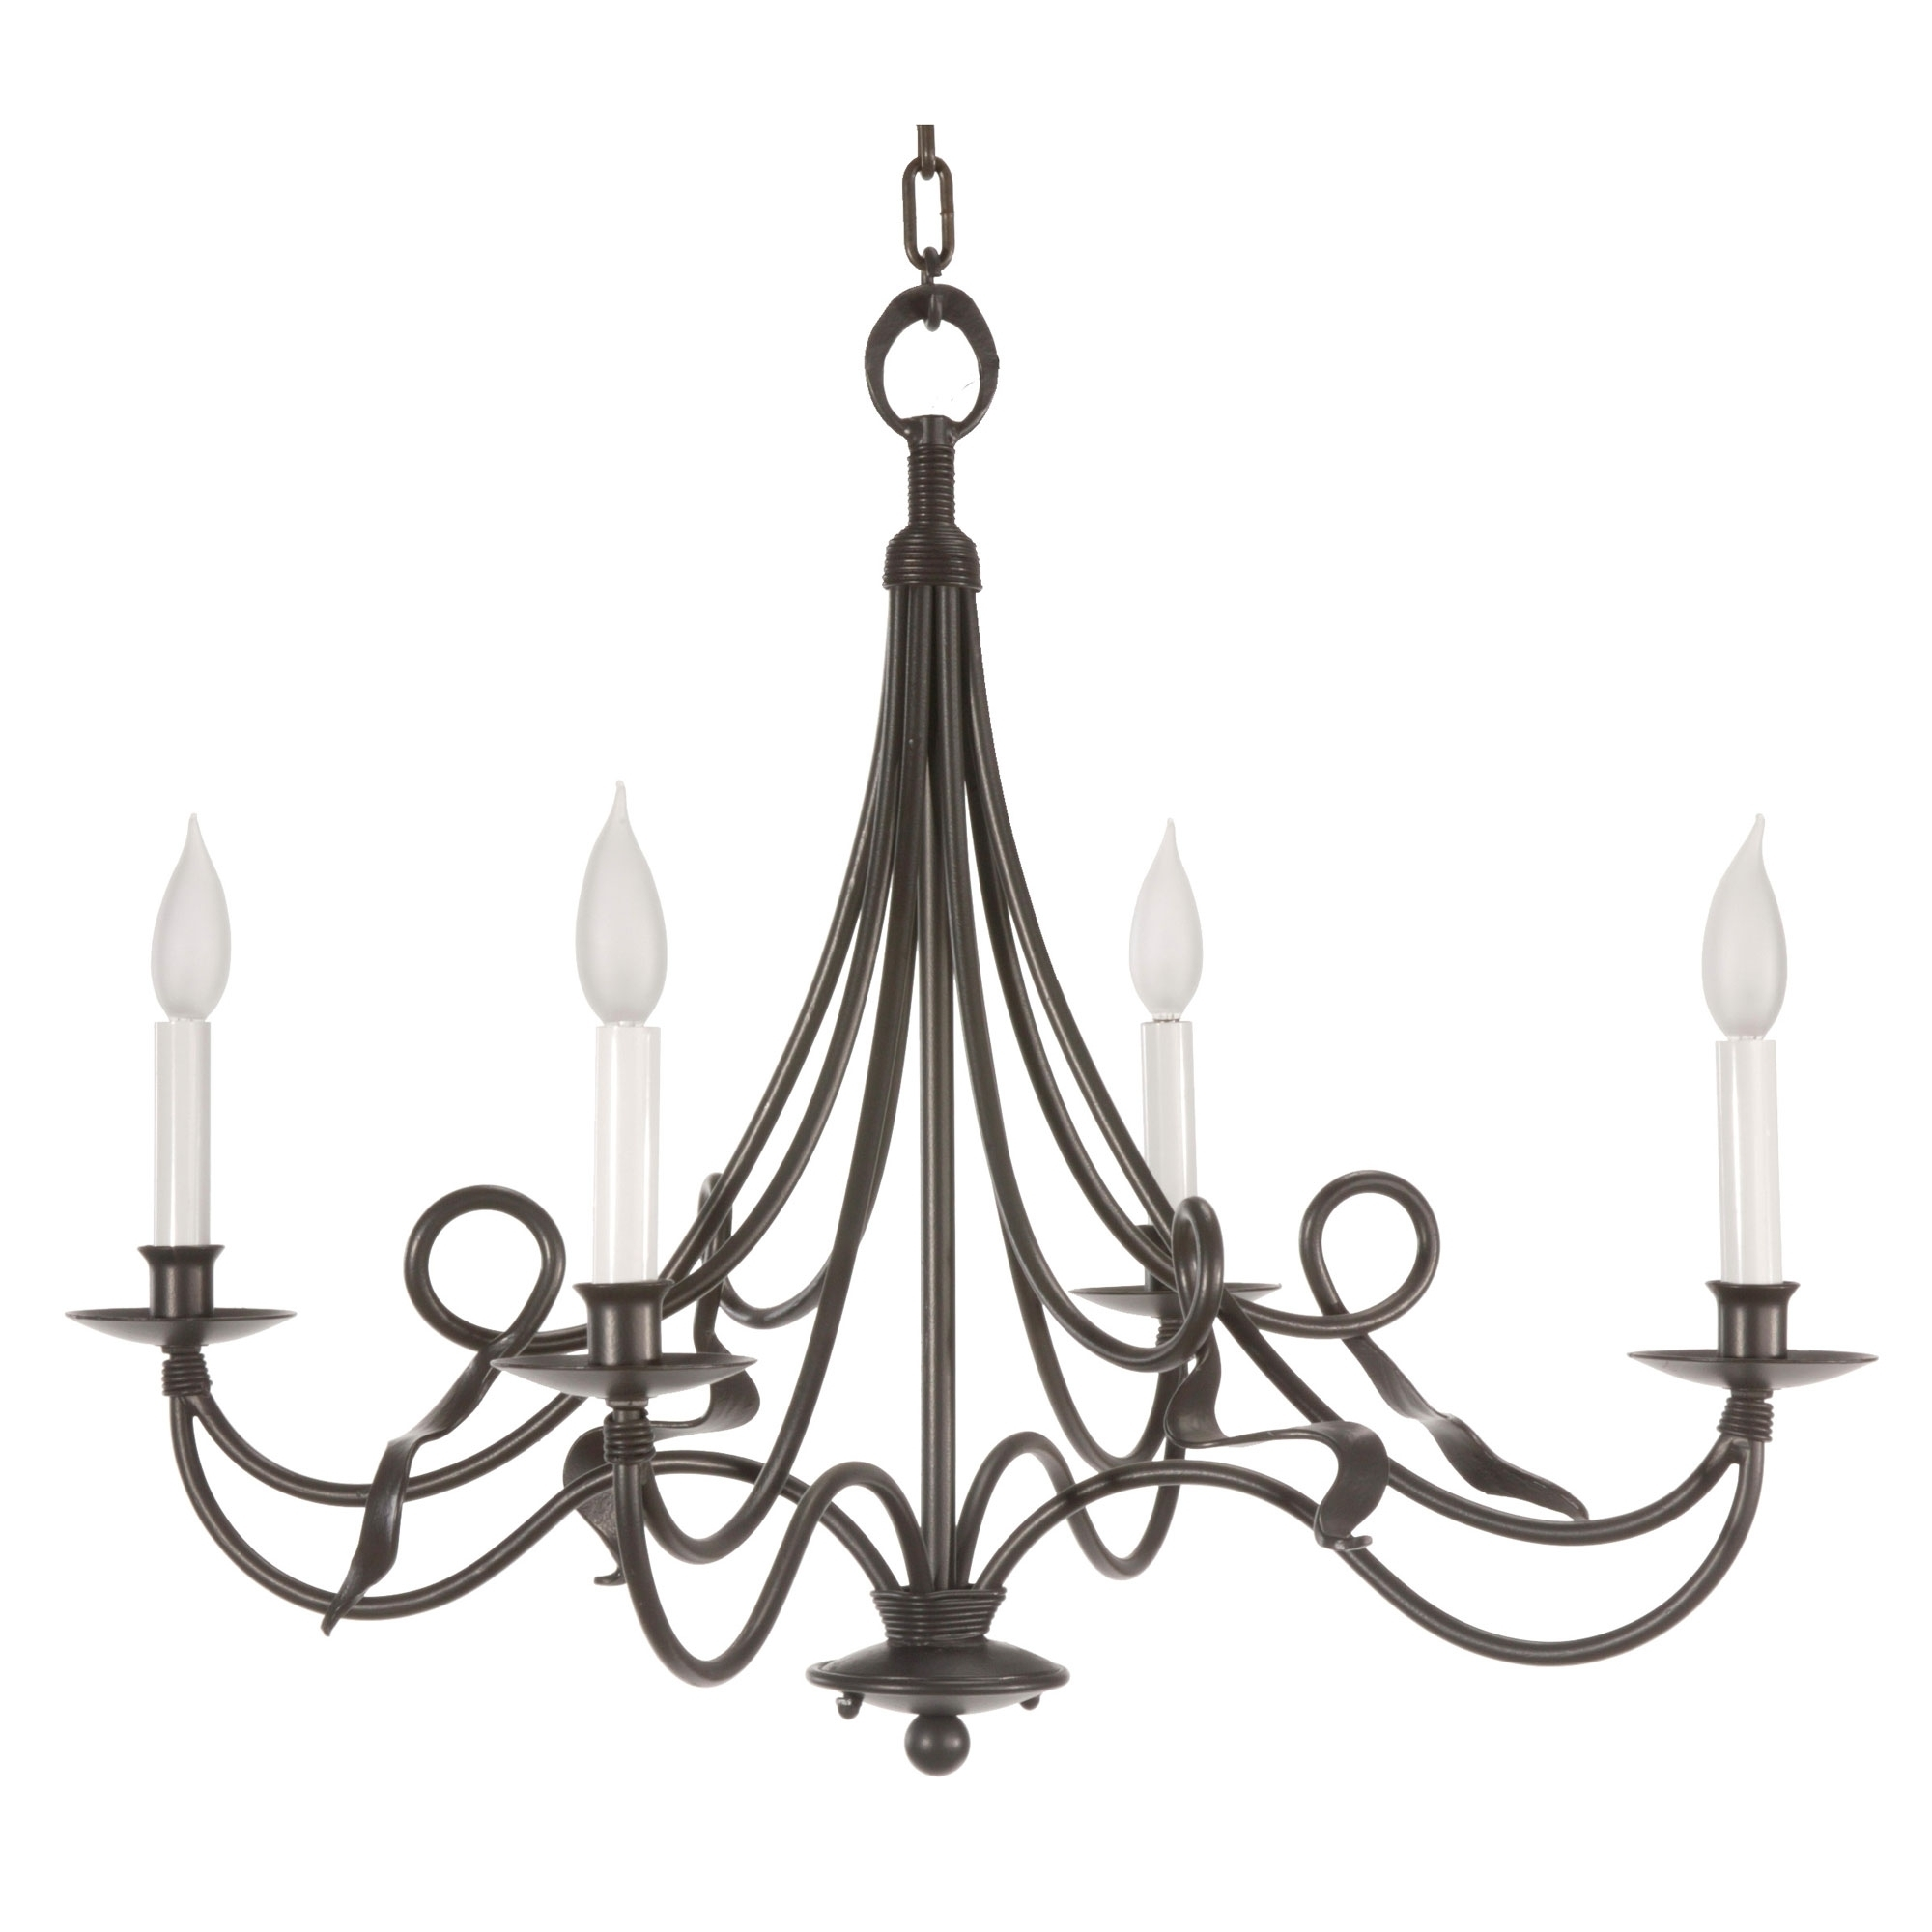 Black Color Rustic Cast Iron Chandeliers With Candle Holder For Intended For Best And Newest Black Iron Chandeliers (View 7 of 15)